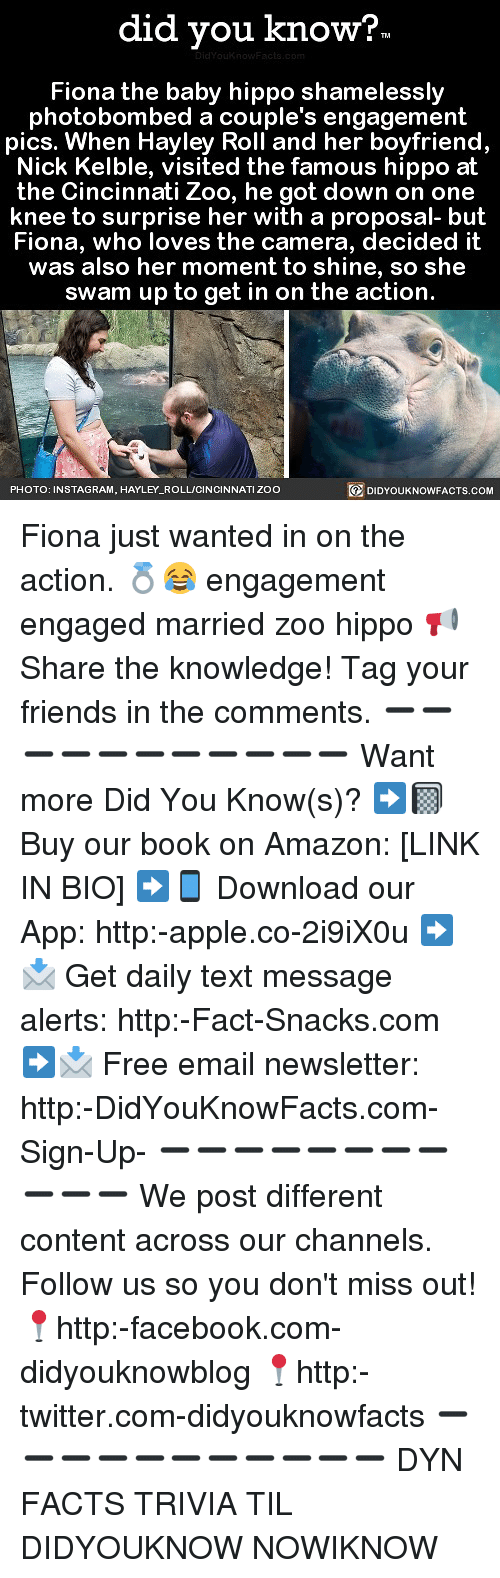 Apple And Facebook Did You Know Fiona The Baby Hippo Shamelessly